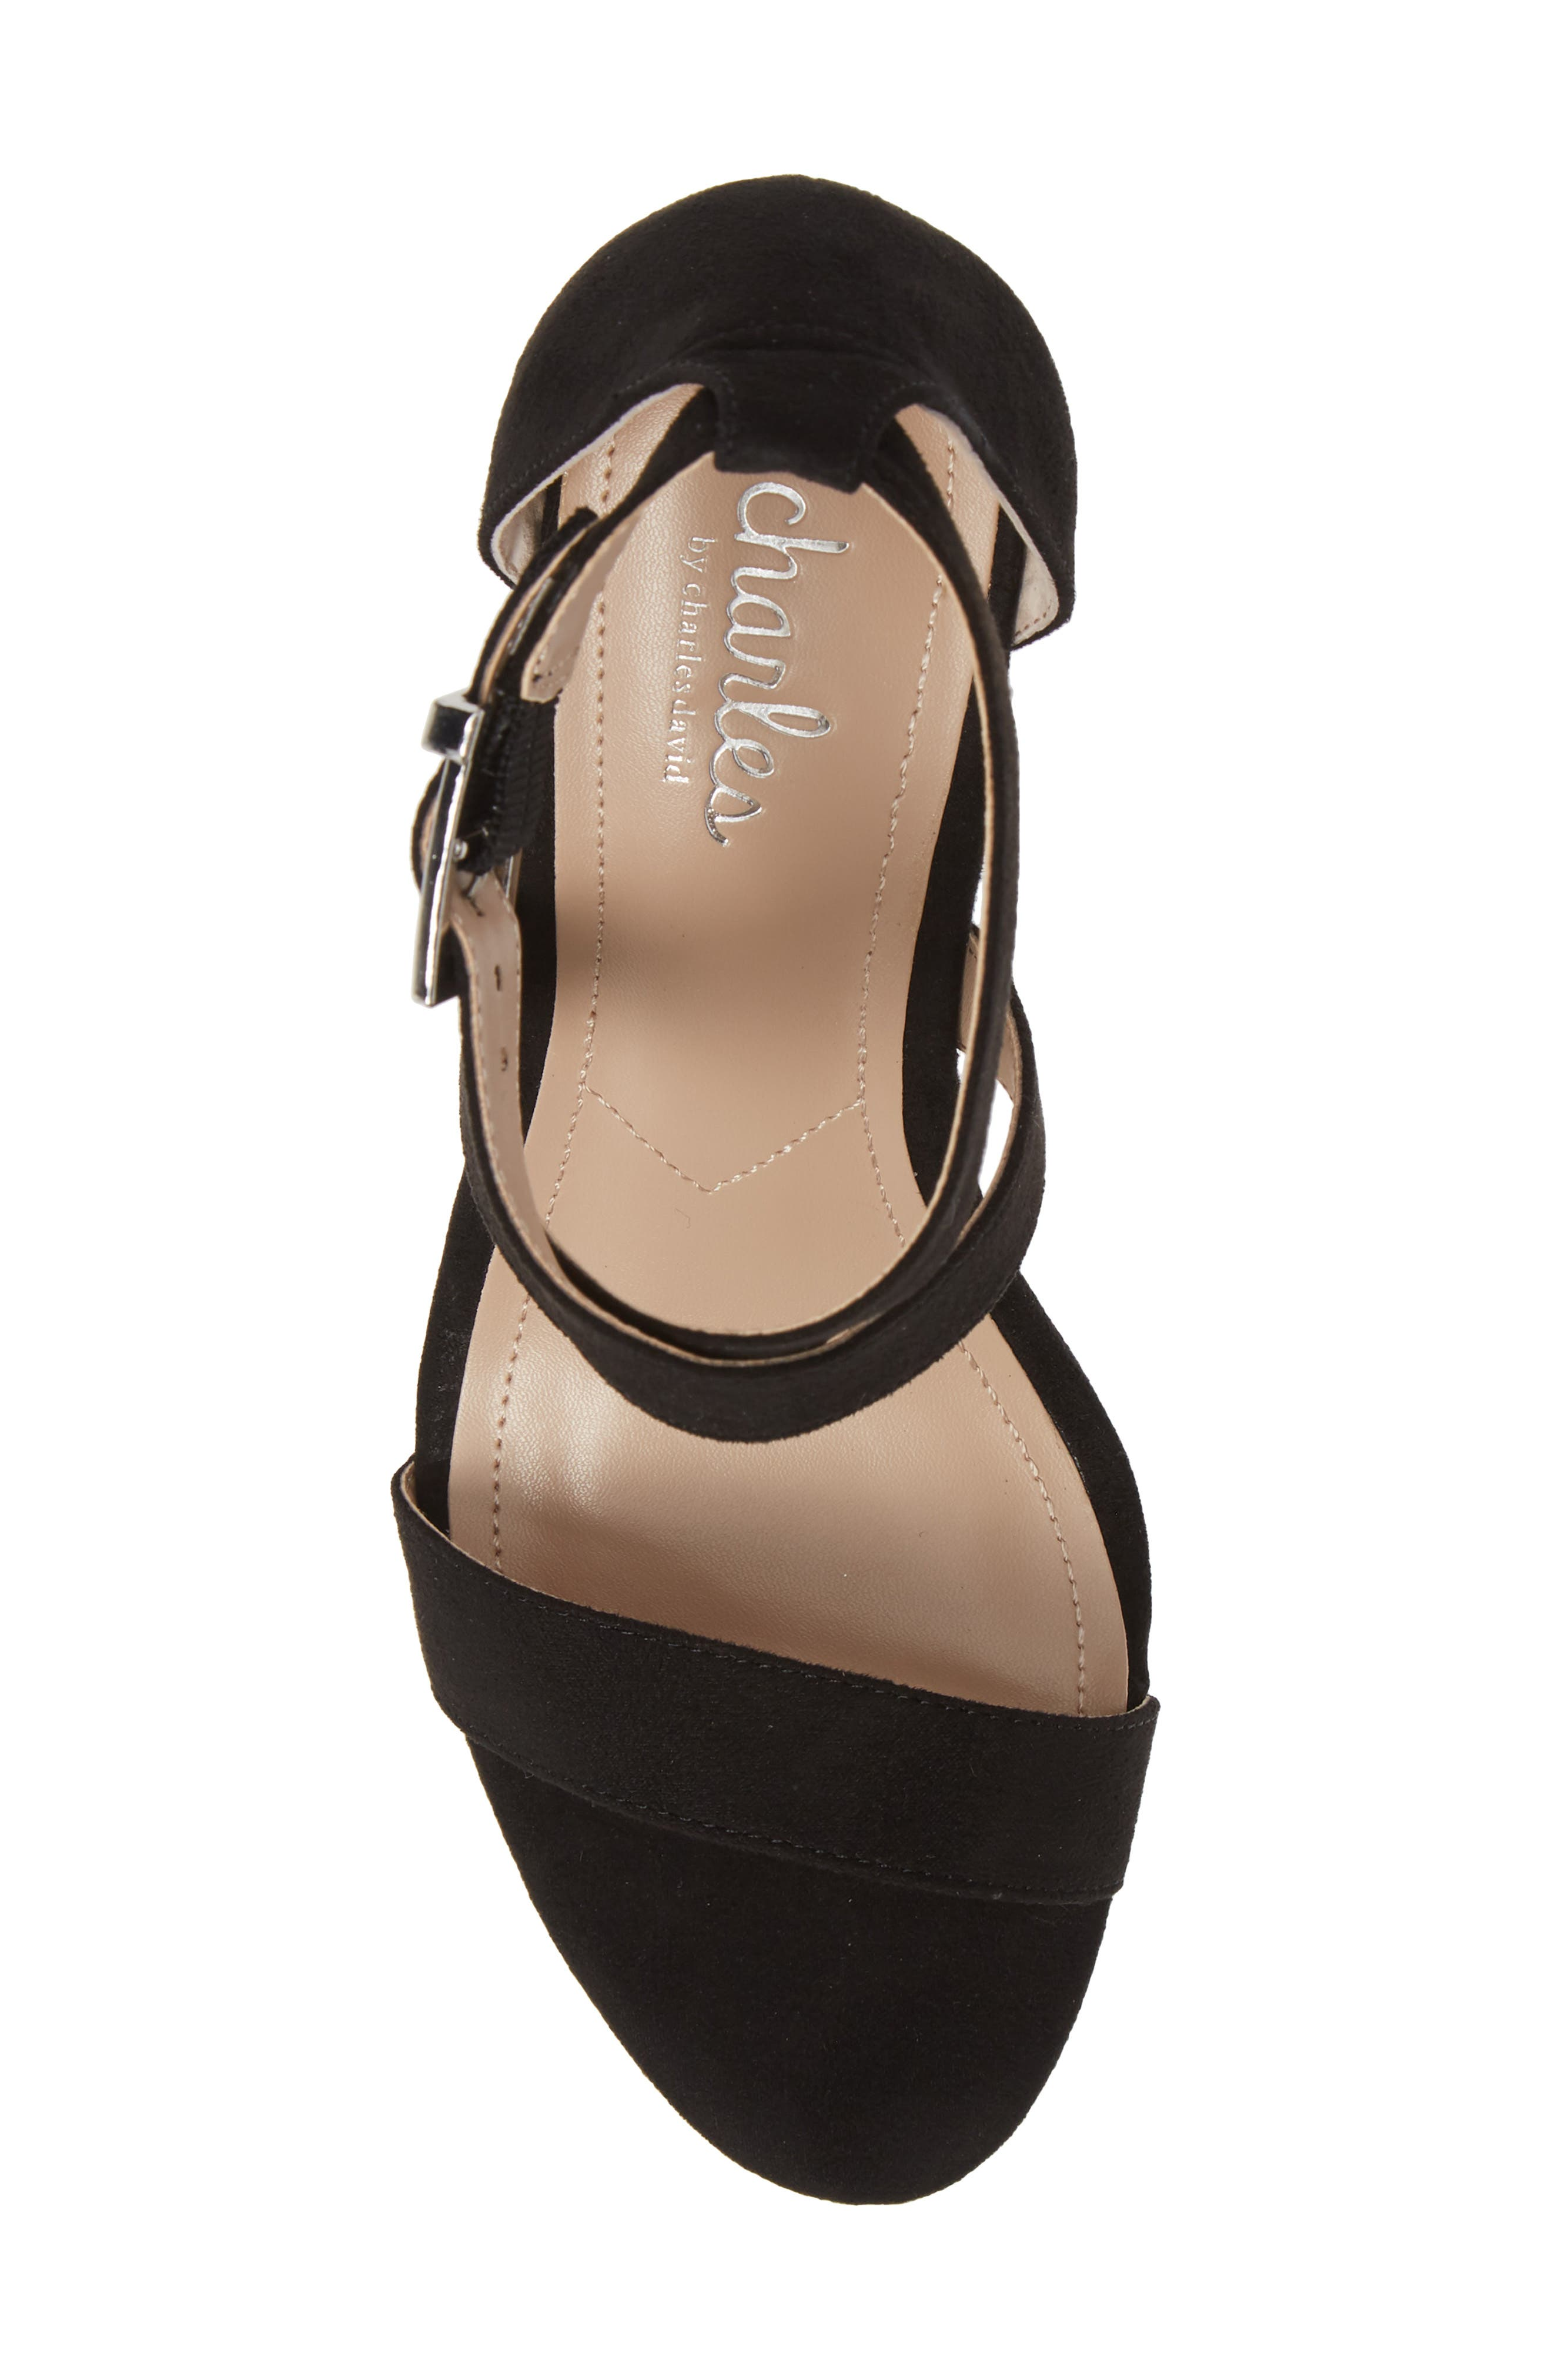 CHARLES BY CHARLES DAVID, Launch Wedge Sandal, Alternate thumbnail 5, color, BLACK FABRIC